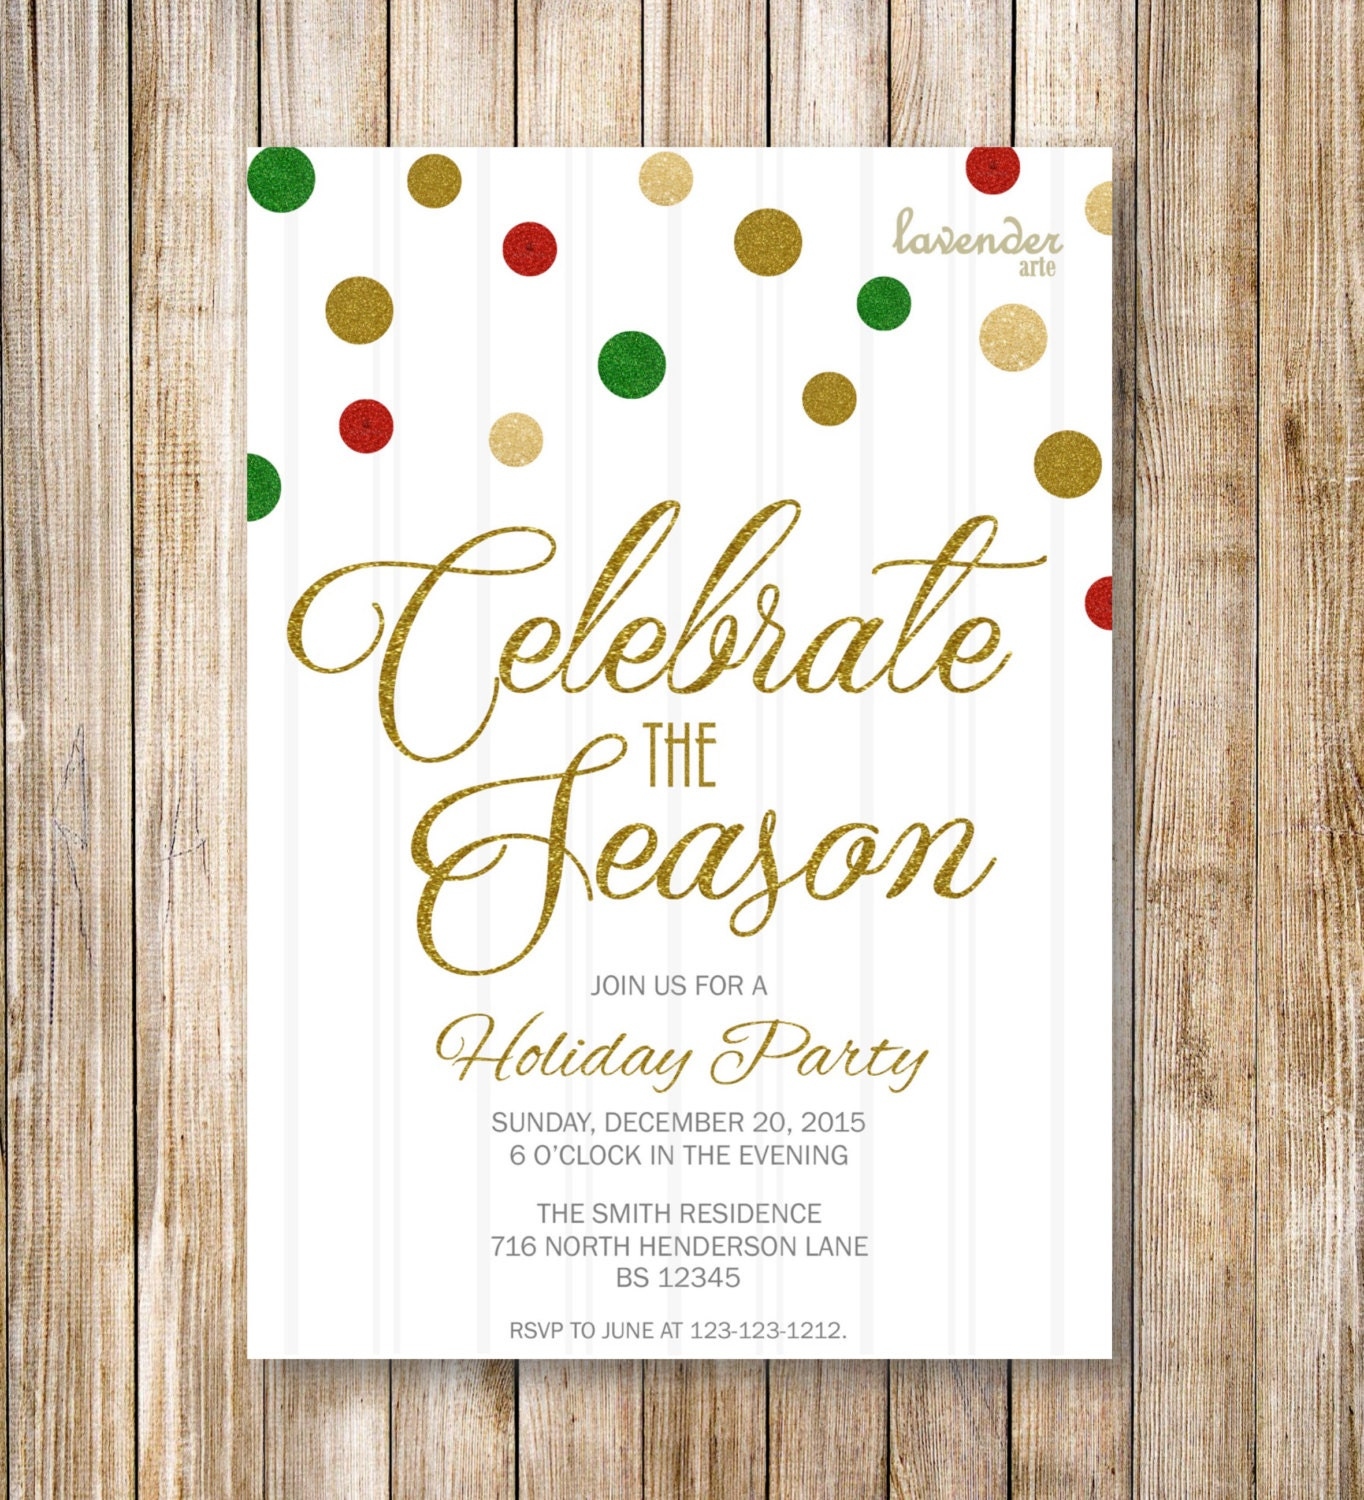 Create Your Own Invitation Card with perfect invitations ideas